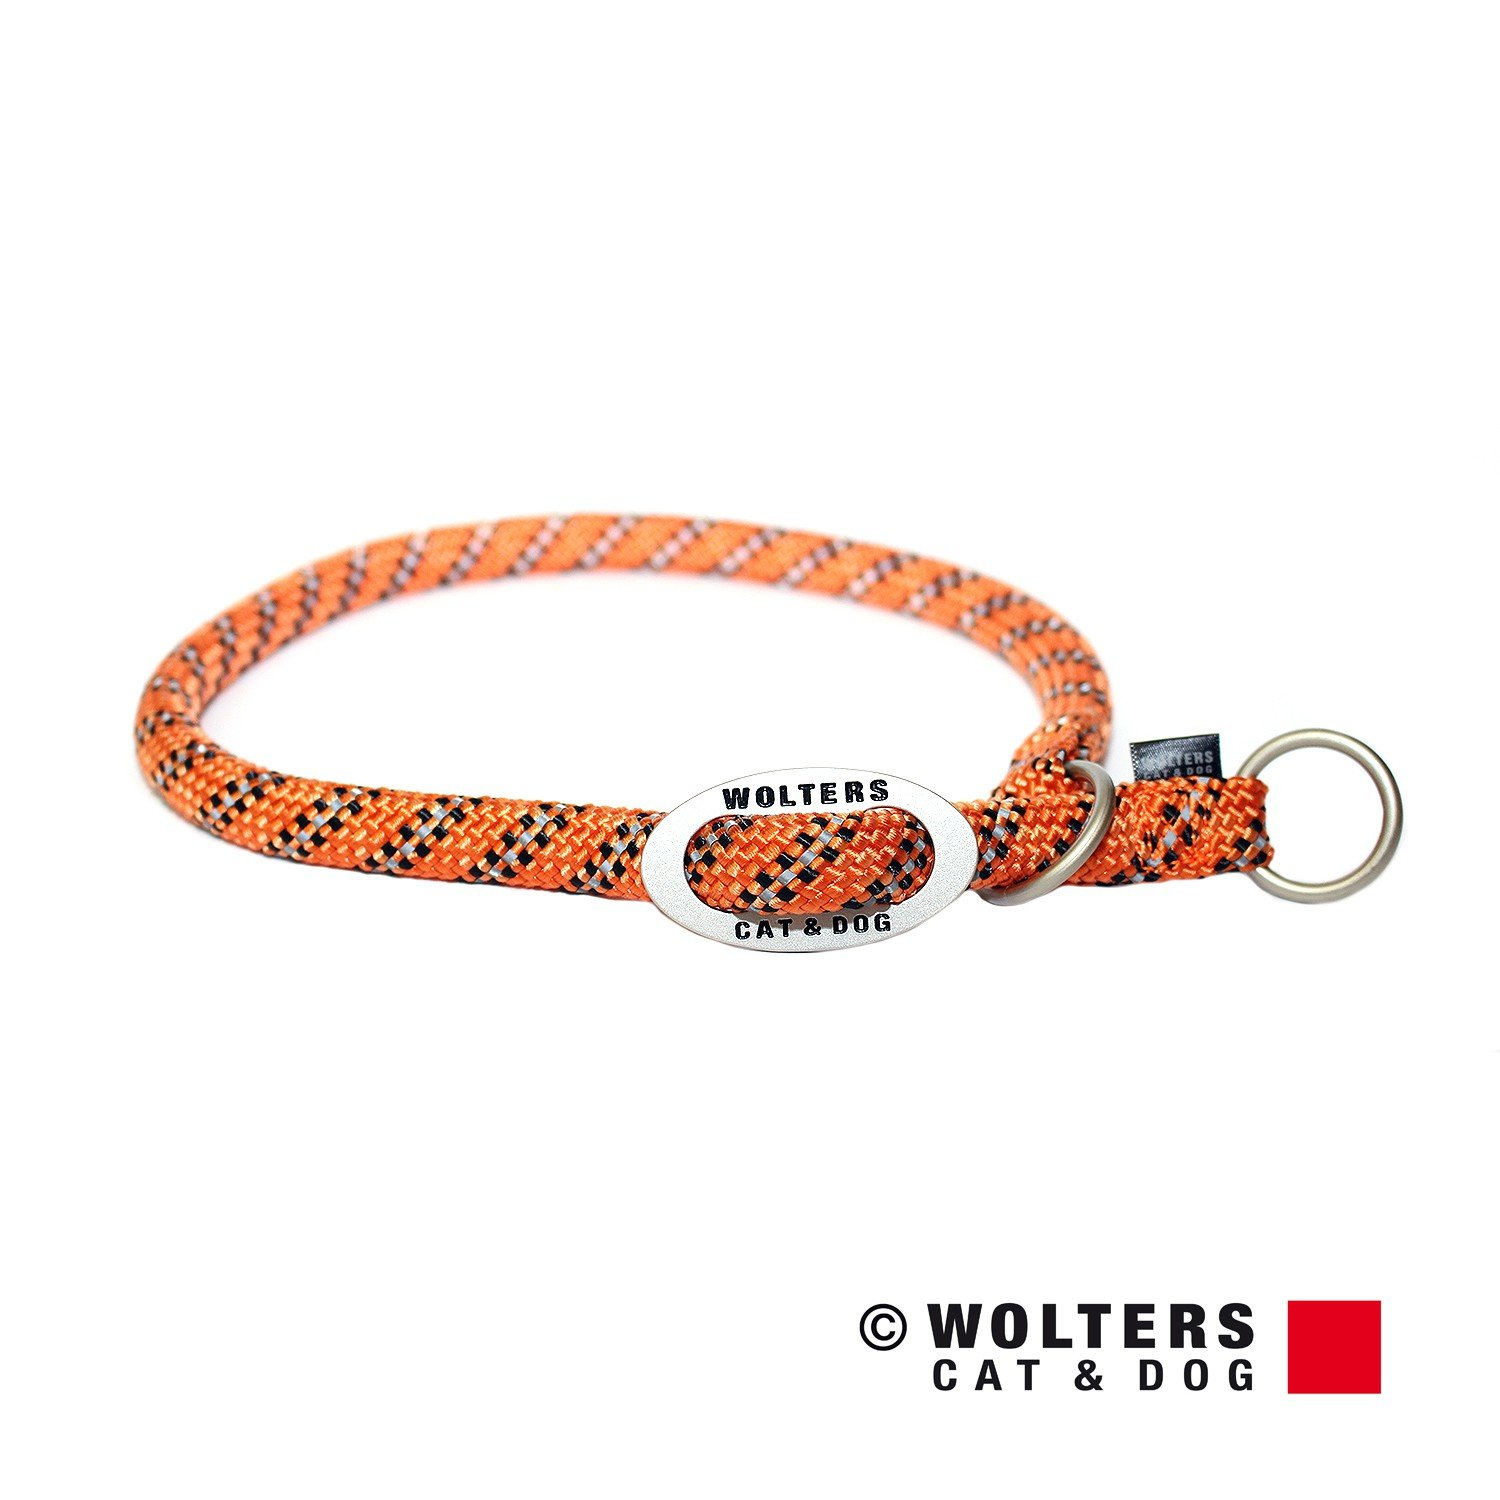 Schlupfhalsband Everest reflektierend Wolters Cat & Dog